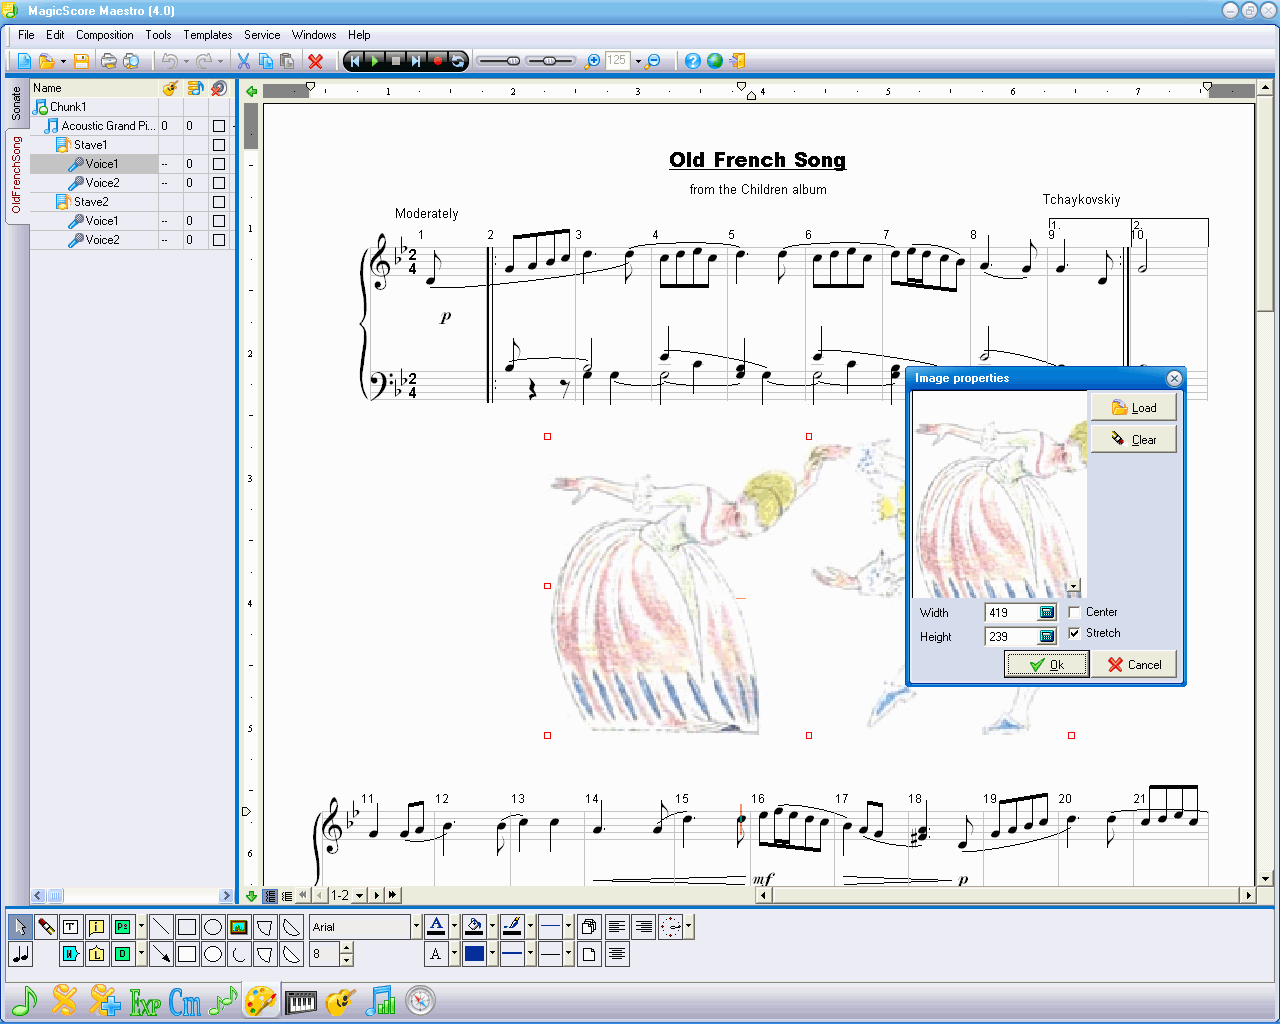 Windows 7 MagicScore Maestro 7.970 full